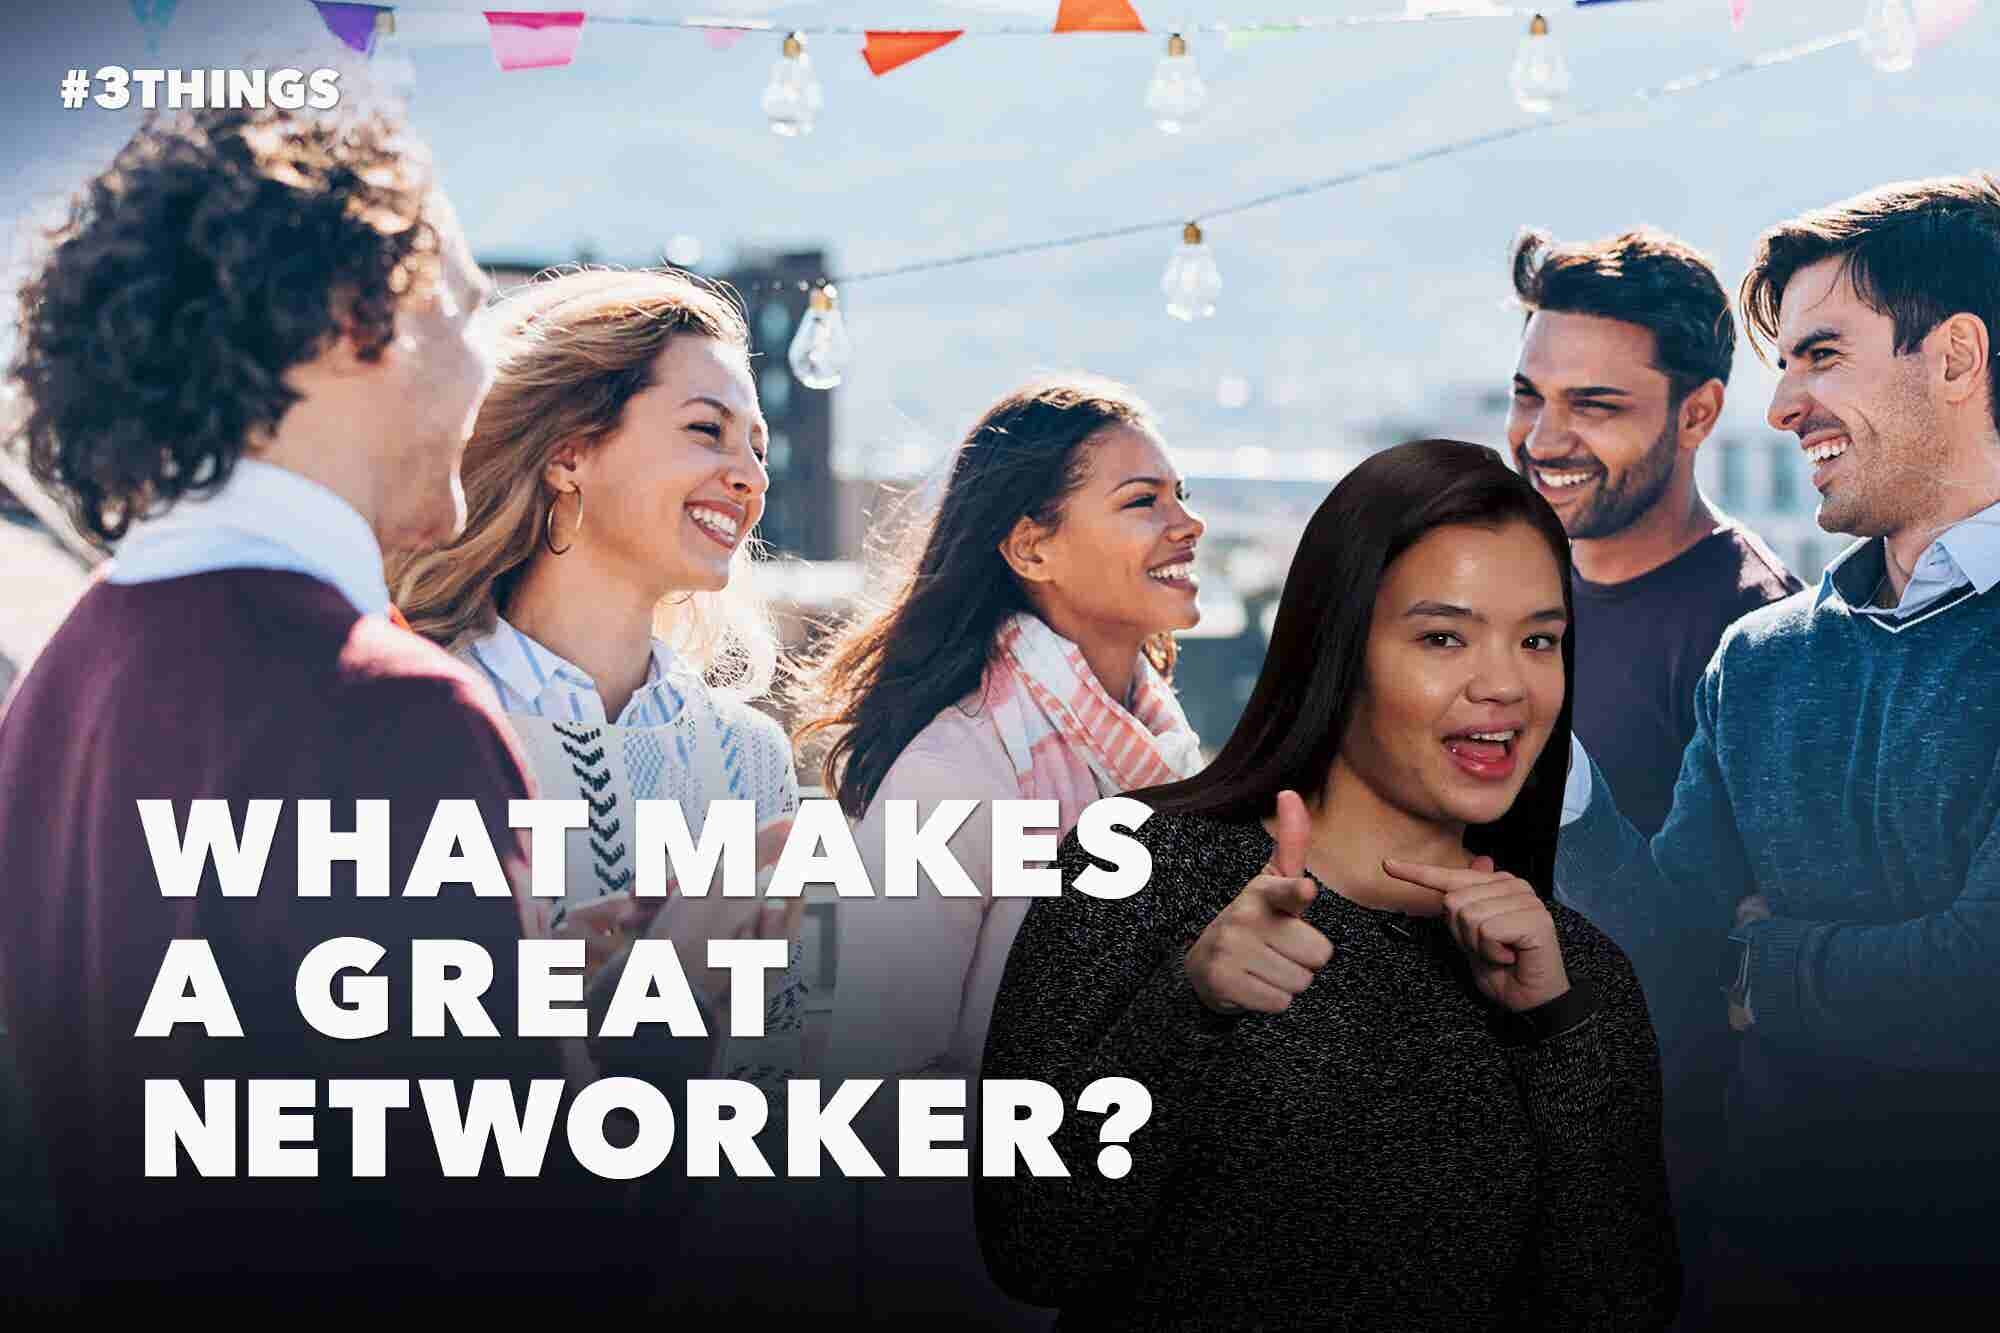 7 Characteristics of a Great Networker